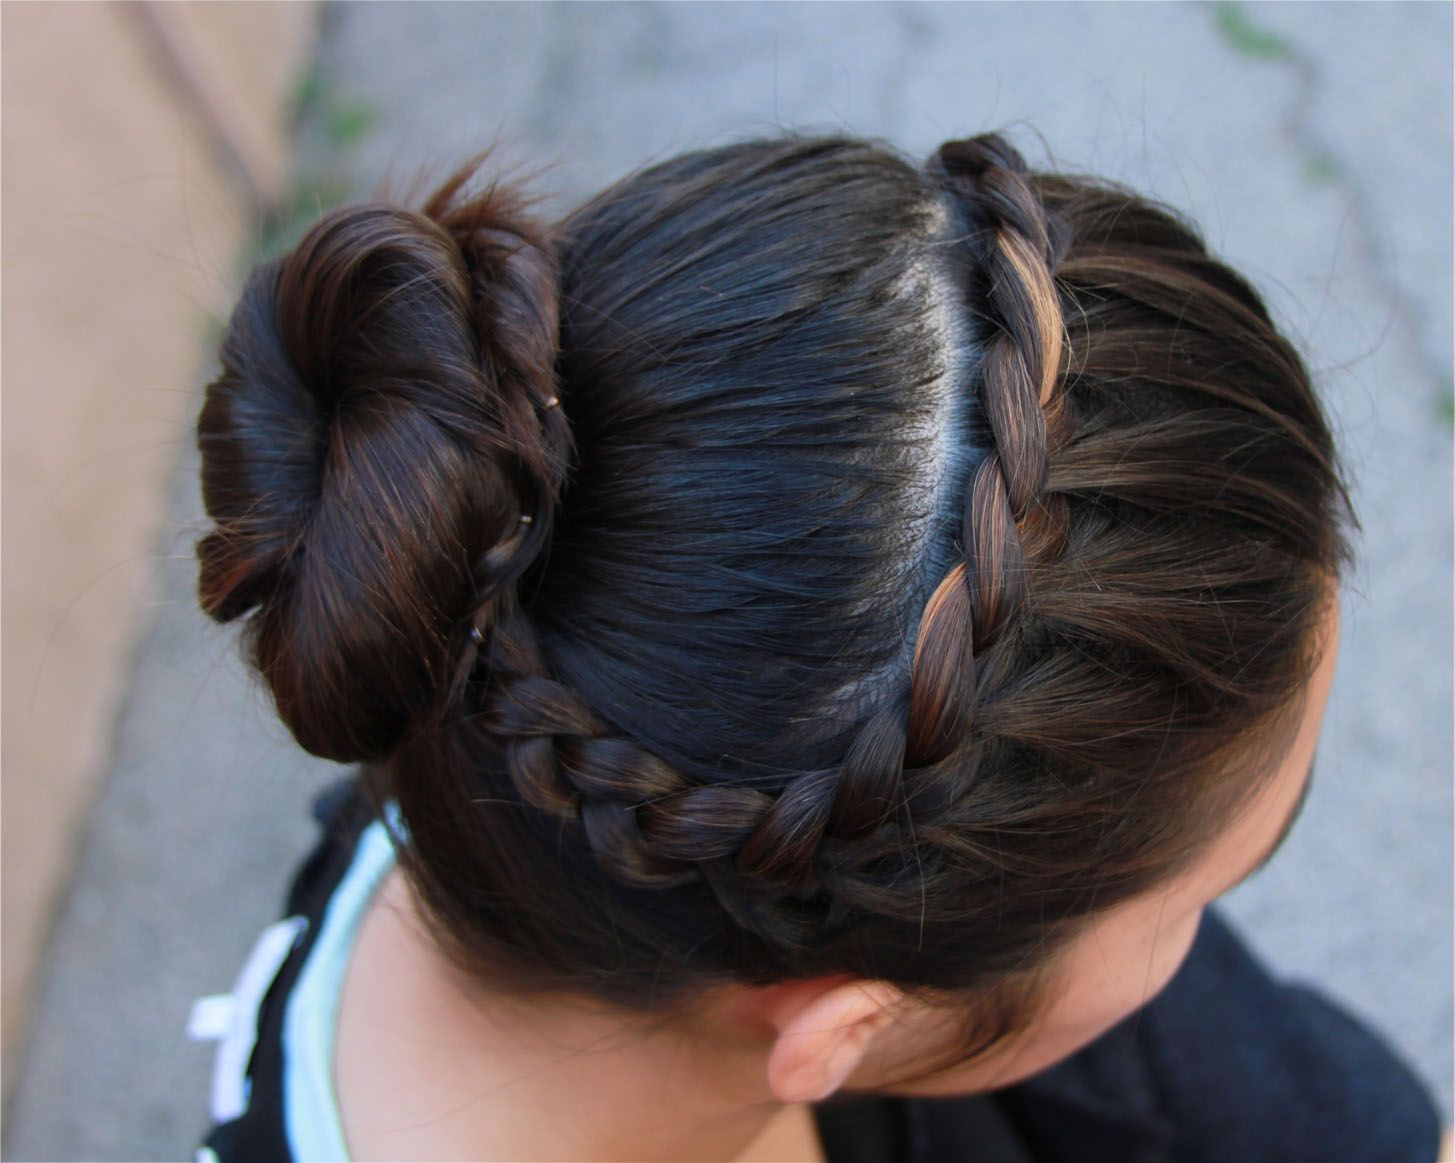 Prime French Braid Styles French Braids And Cute Braided Hairstyles On Hairstyle Inspiration Daily Dogsangcom